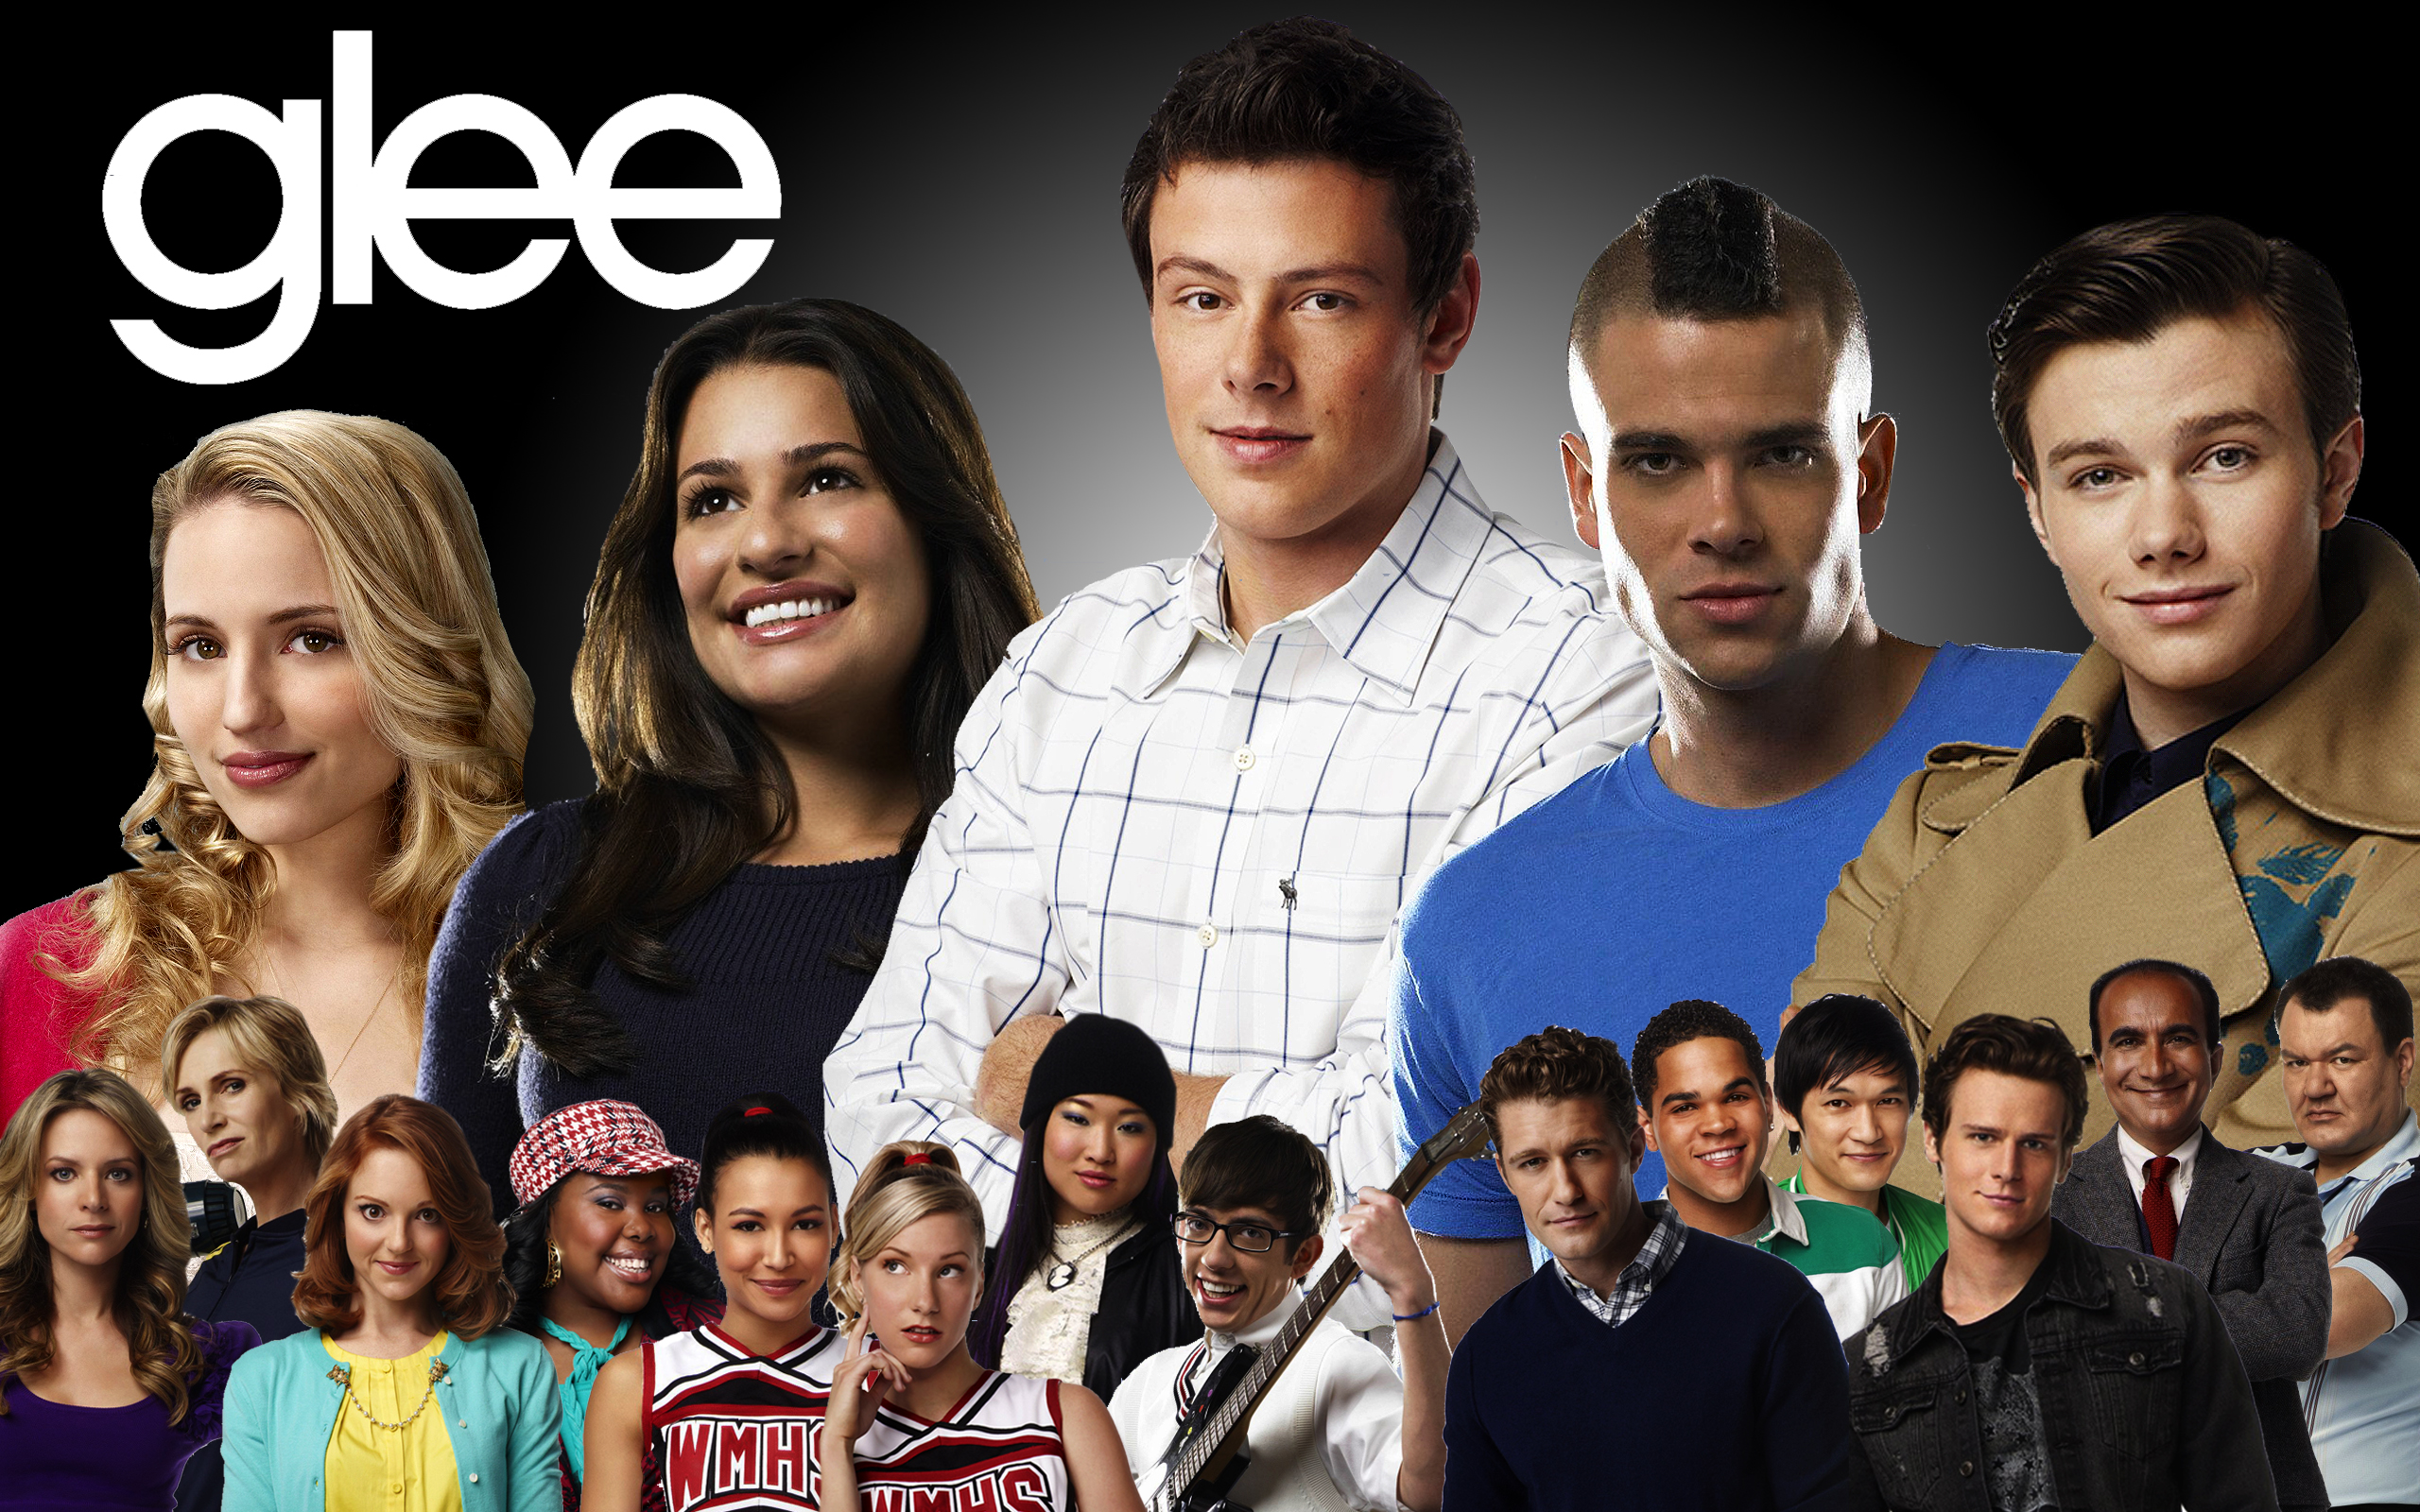 Glee wallpaper 1